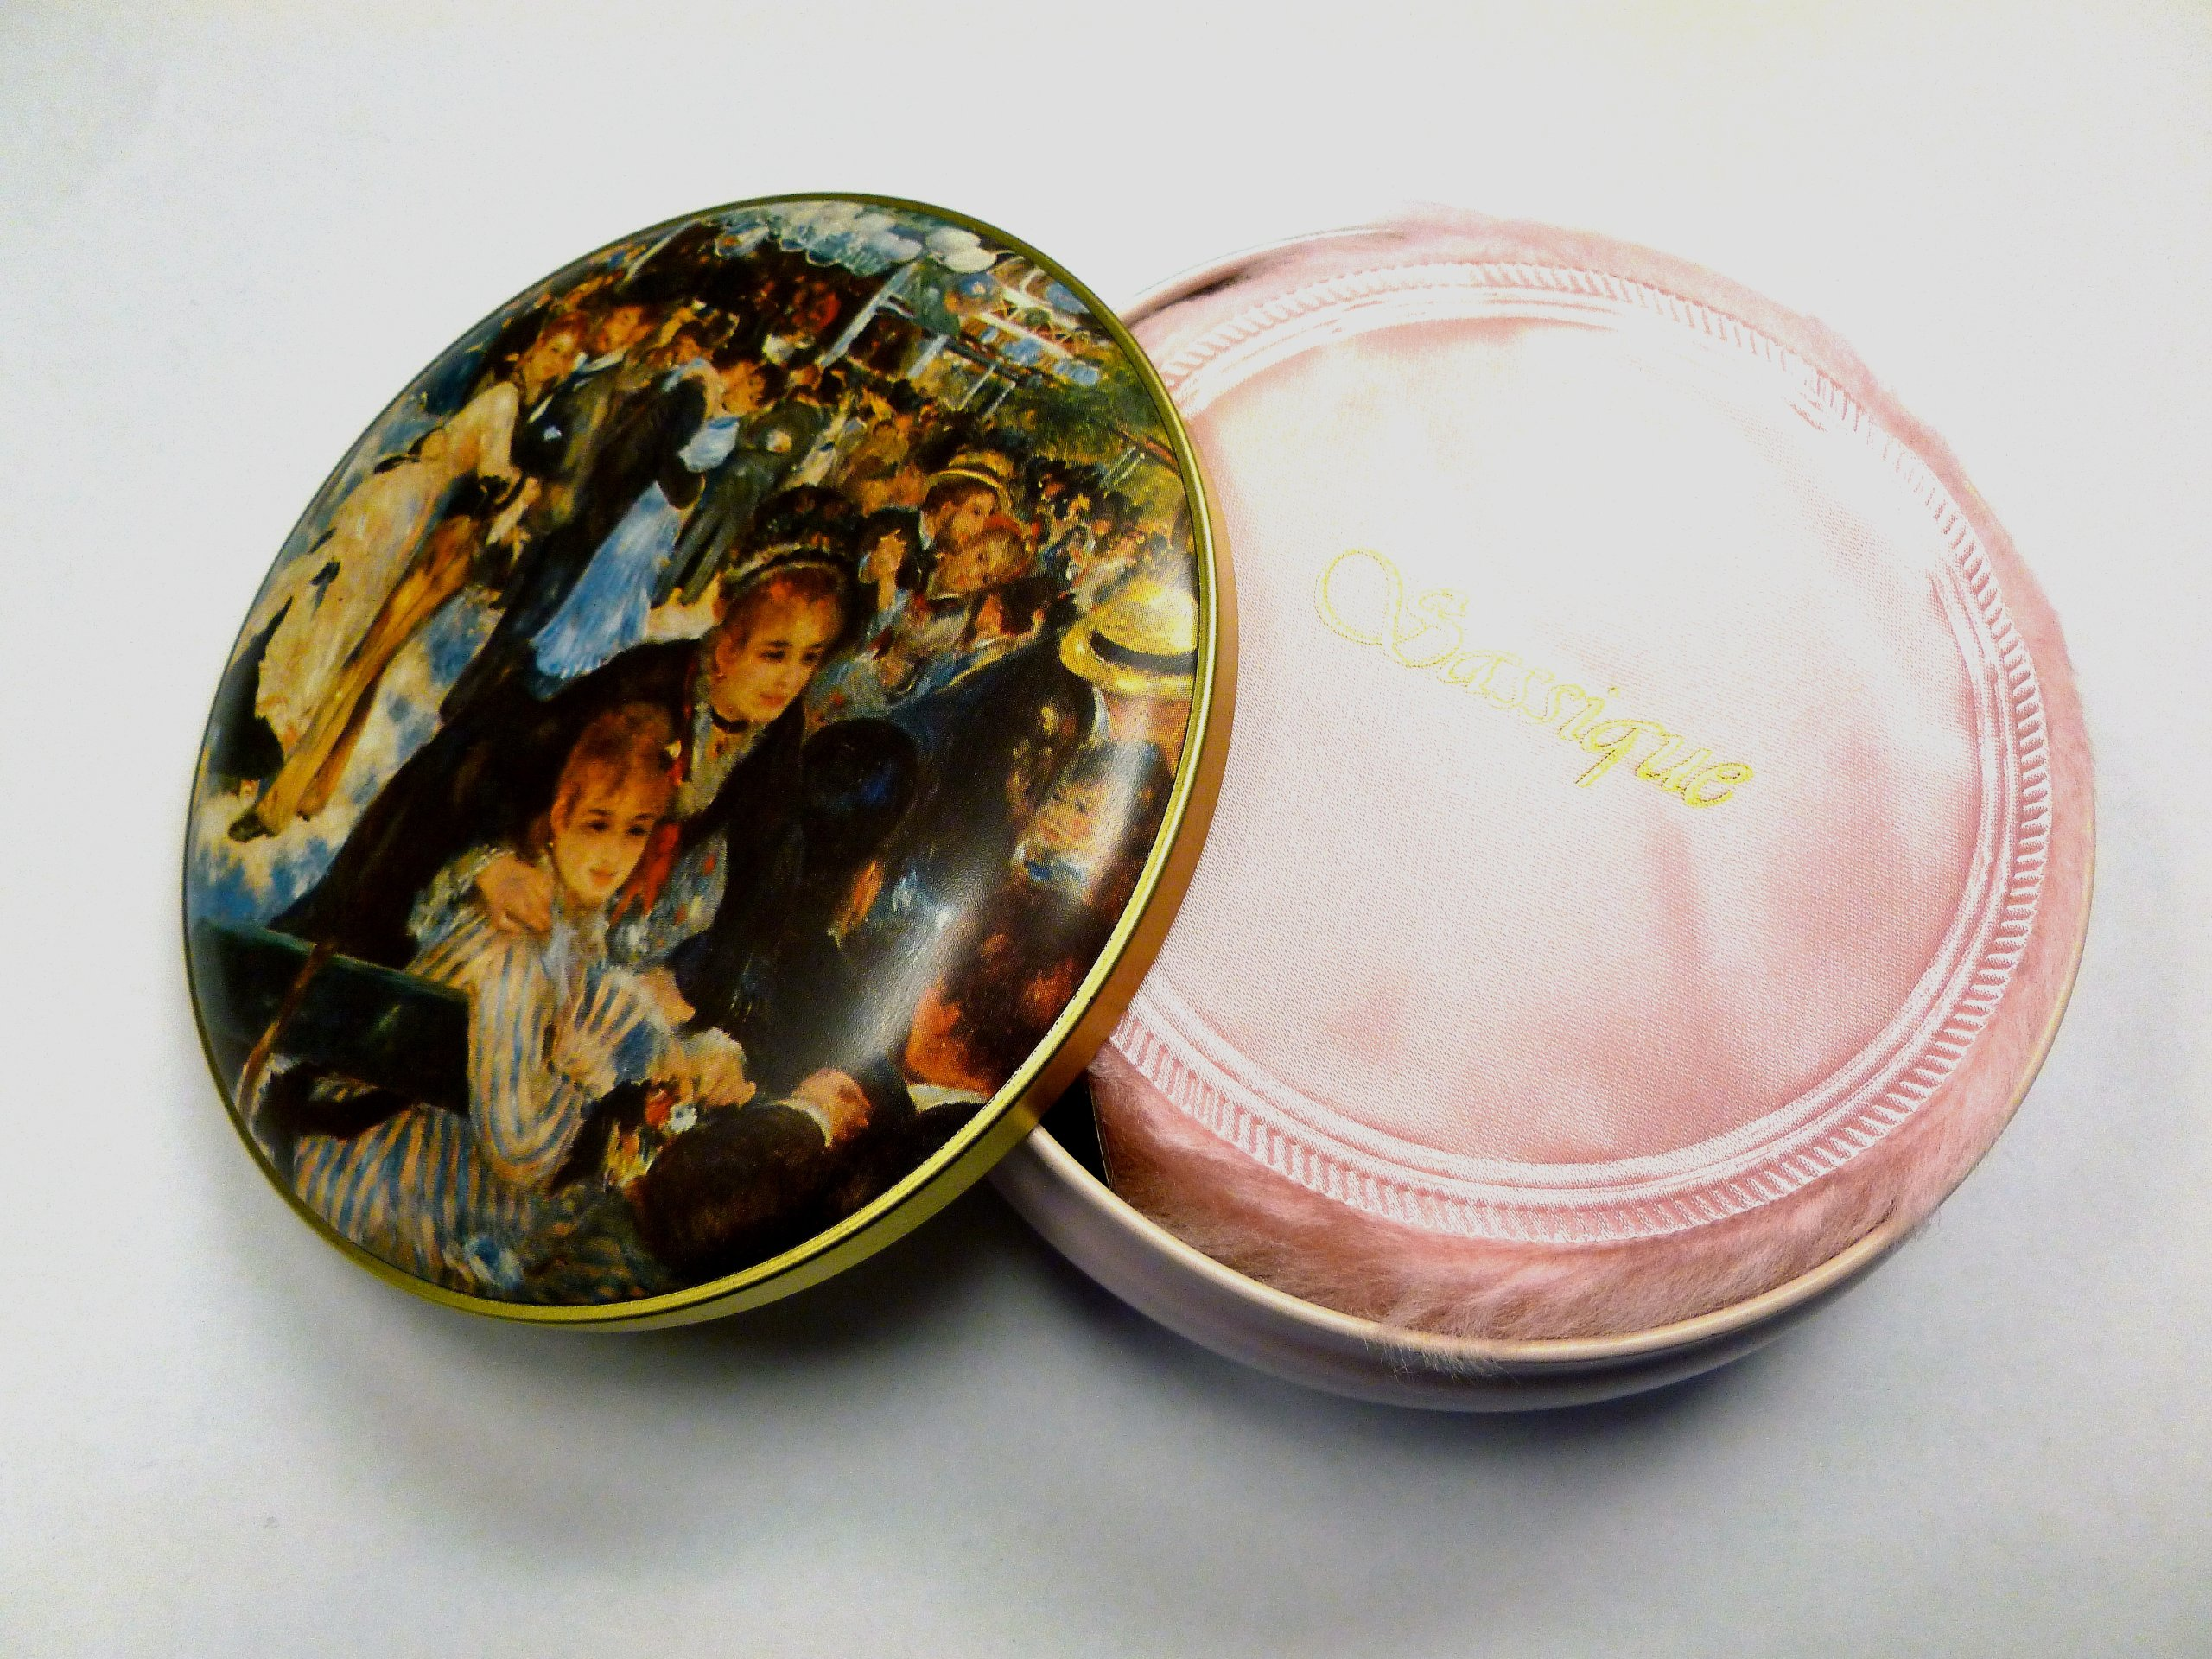 Sassique Dusting Powder in Keepsake Tin - Wholesale Pricing - 24 Pcs